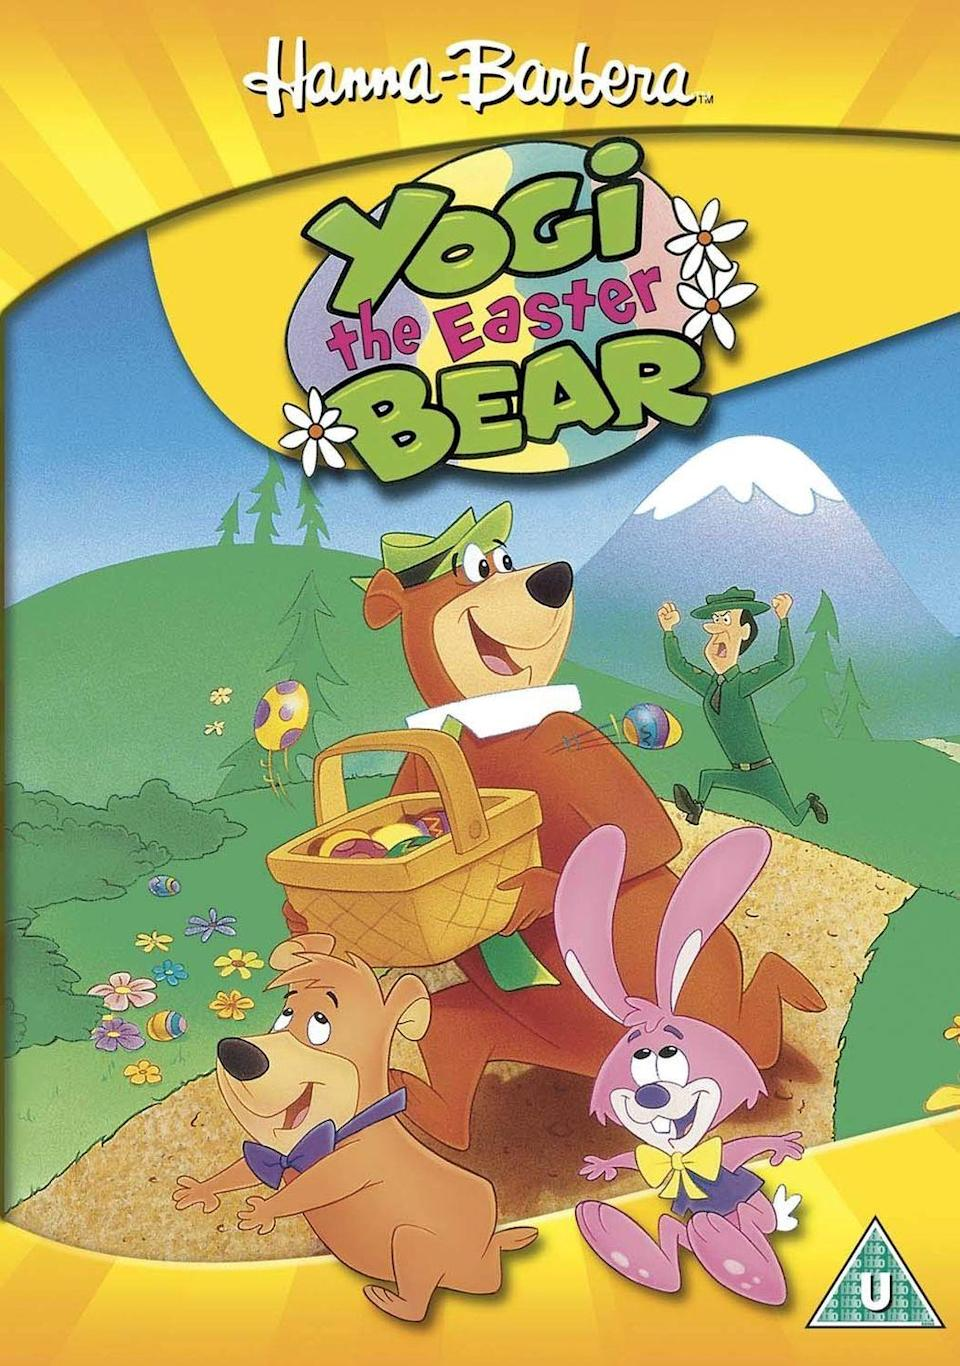 """<p>Starring the classic Hanna-Barbera character, this animated flick follows Yogi the Bear as he causes mayhem for Ranger Smith during the Jellystone Park's Easter Jamboree.</p><p><a class=""""link rapid-noclick-resp"""" href=""""https://www.amazon.com/gp/video/detail/amzn1.dv.gti.96a9f728-6dae-36f0-9869-f82fa4ab59c6?tag=syn-yahoo-20&ascsubtag=%5Bartid%7C10070.g.16643651%5Bsrc%7Cyahoo-us"""" rel=""""nofollow noopener"""" target=""""_blank"""" data-ylk=""""slk:STREAM NOW"""">STREAM NOW </a></p>"""